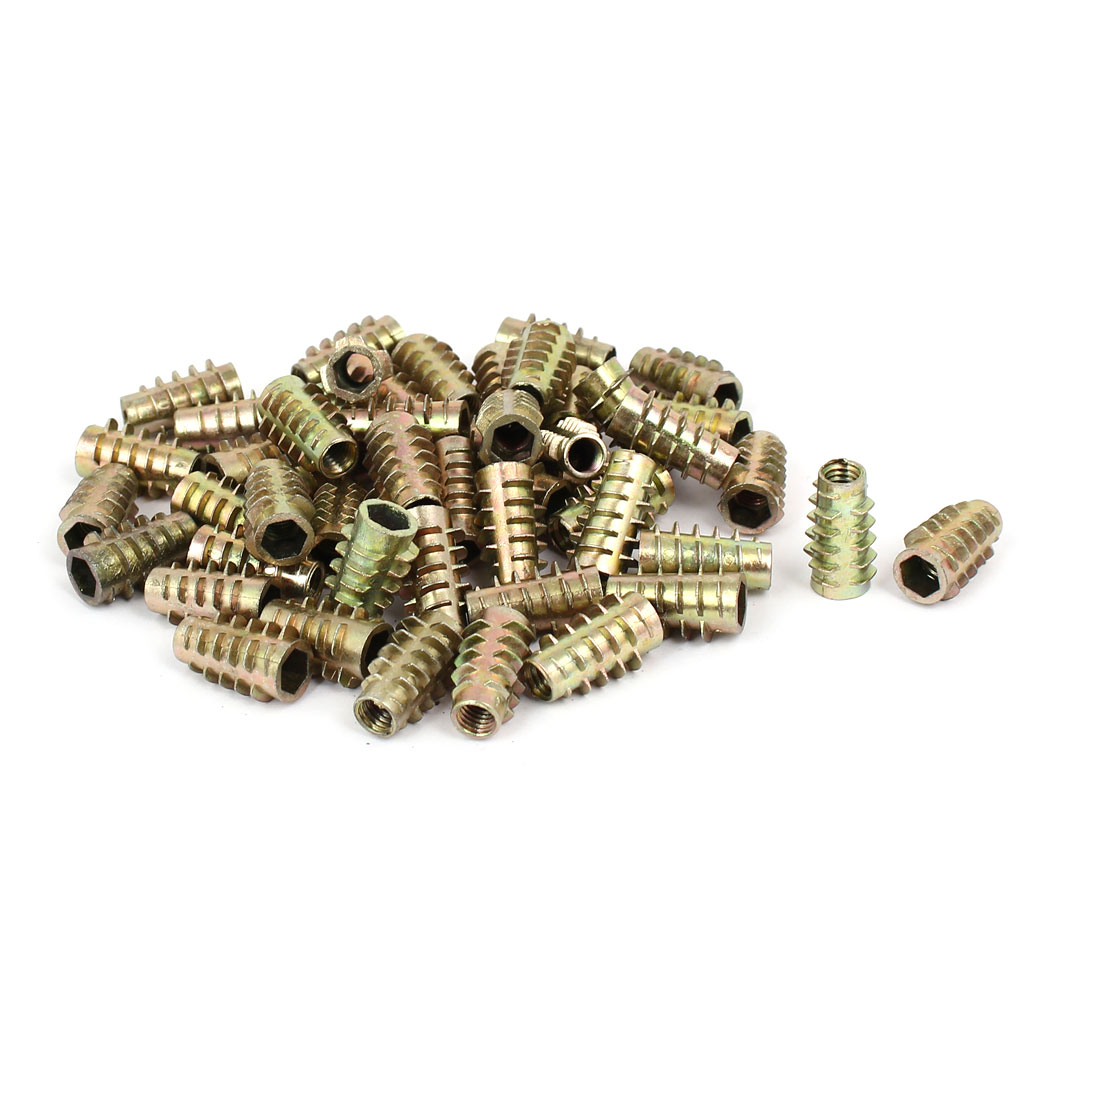 Wood Furniture Zinc Alloy Hex Socket Insert Screws E-Nuts M6 x 20mm 50pcs